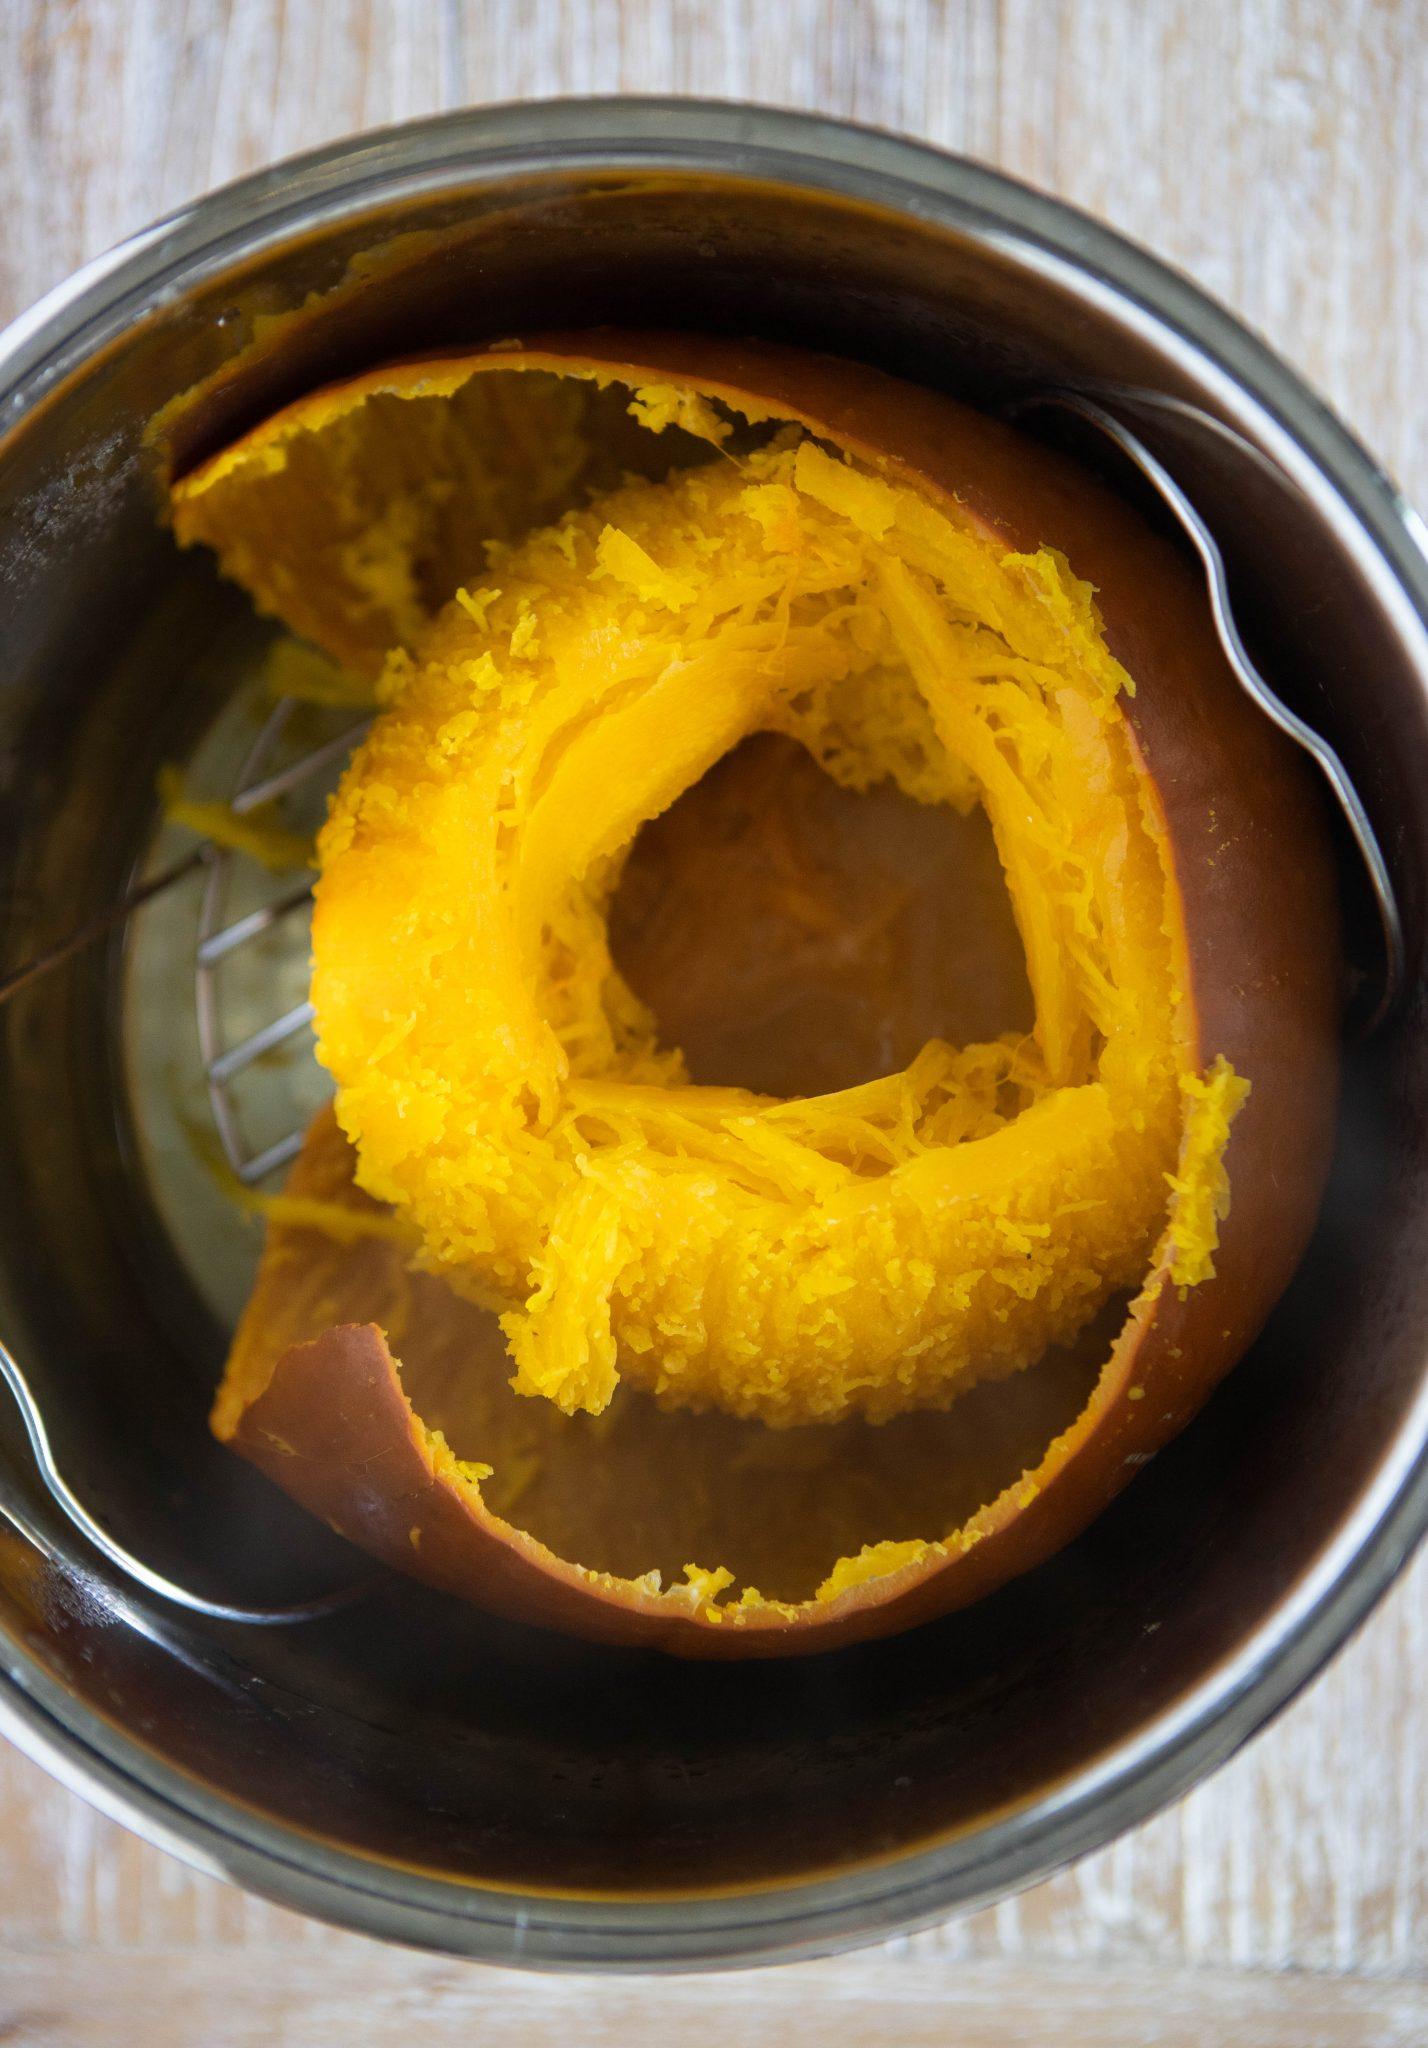 pumpkin cut open and cooked in the insert of an Instant Pot